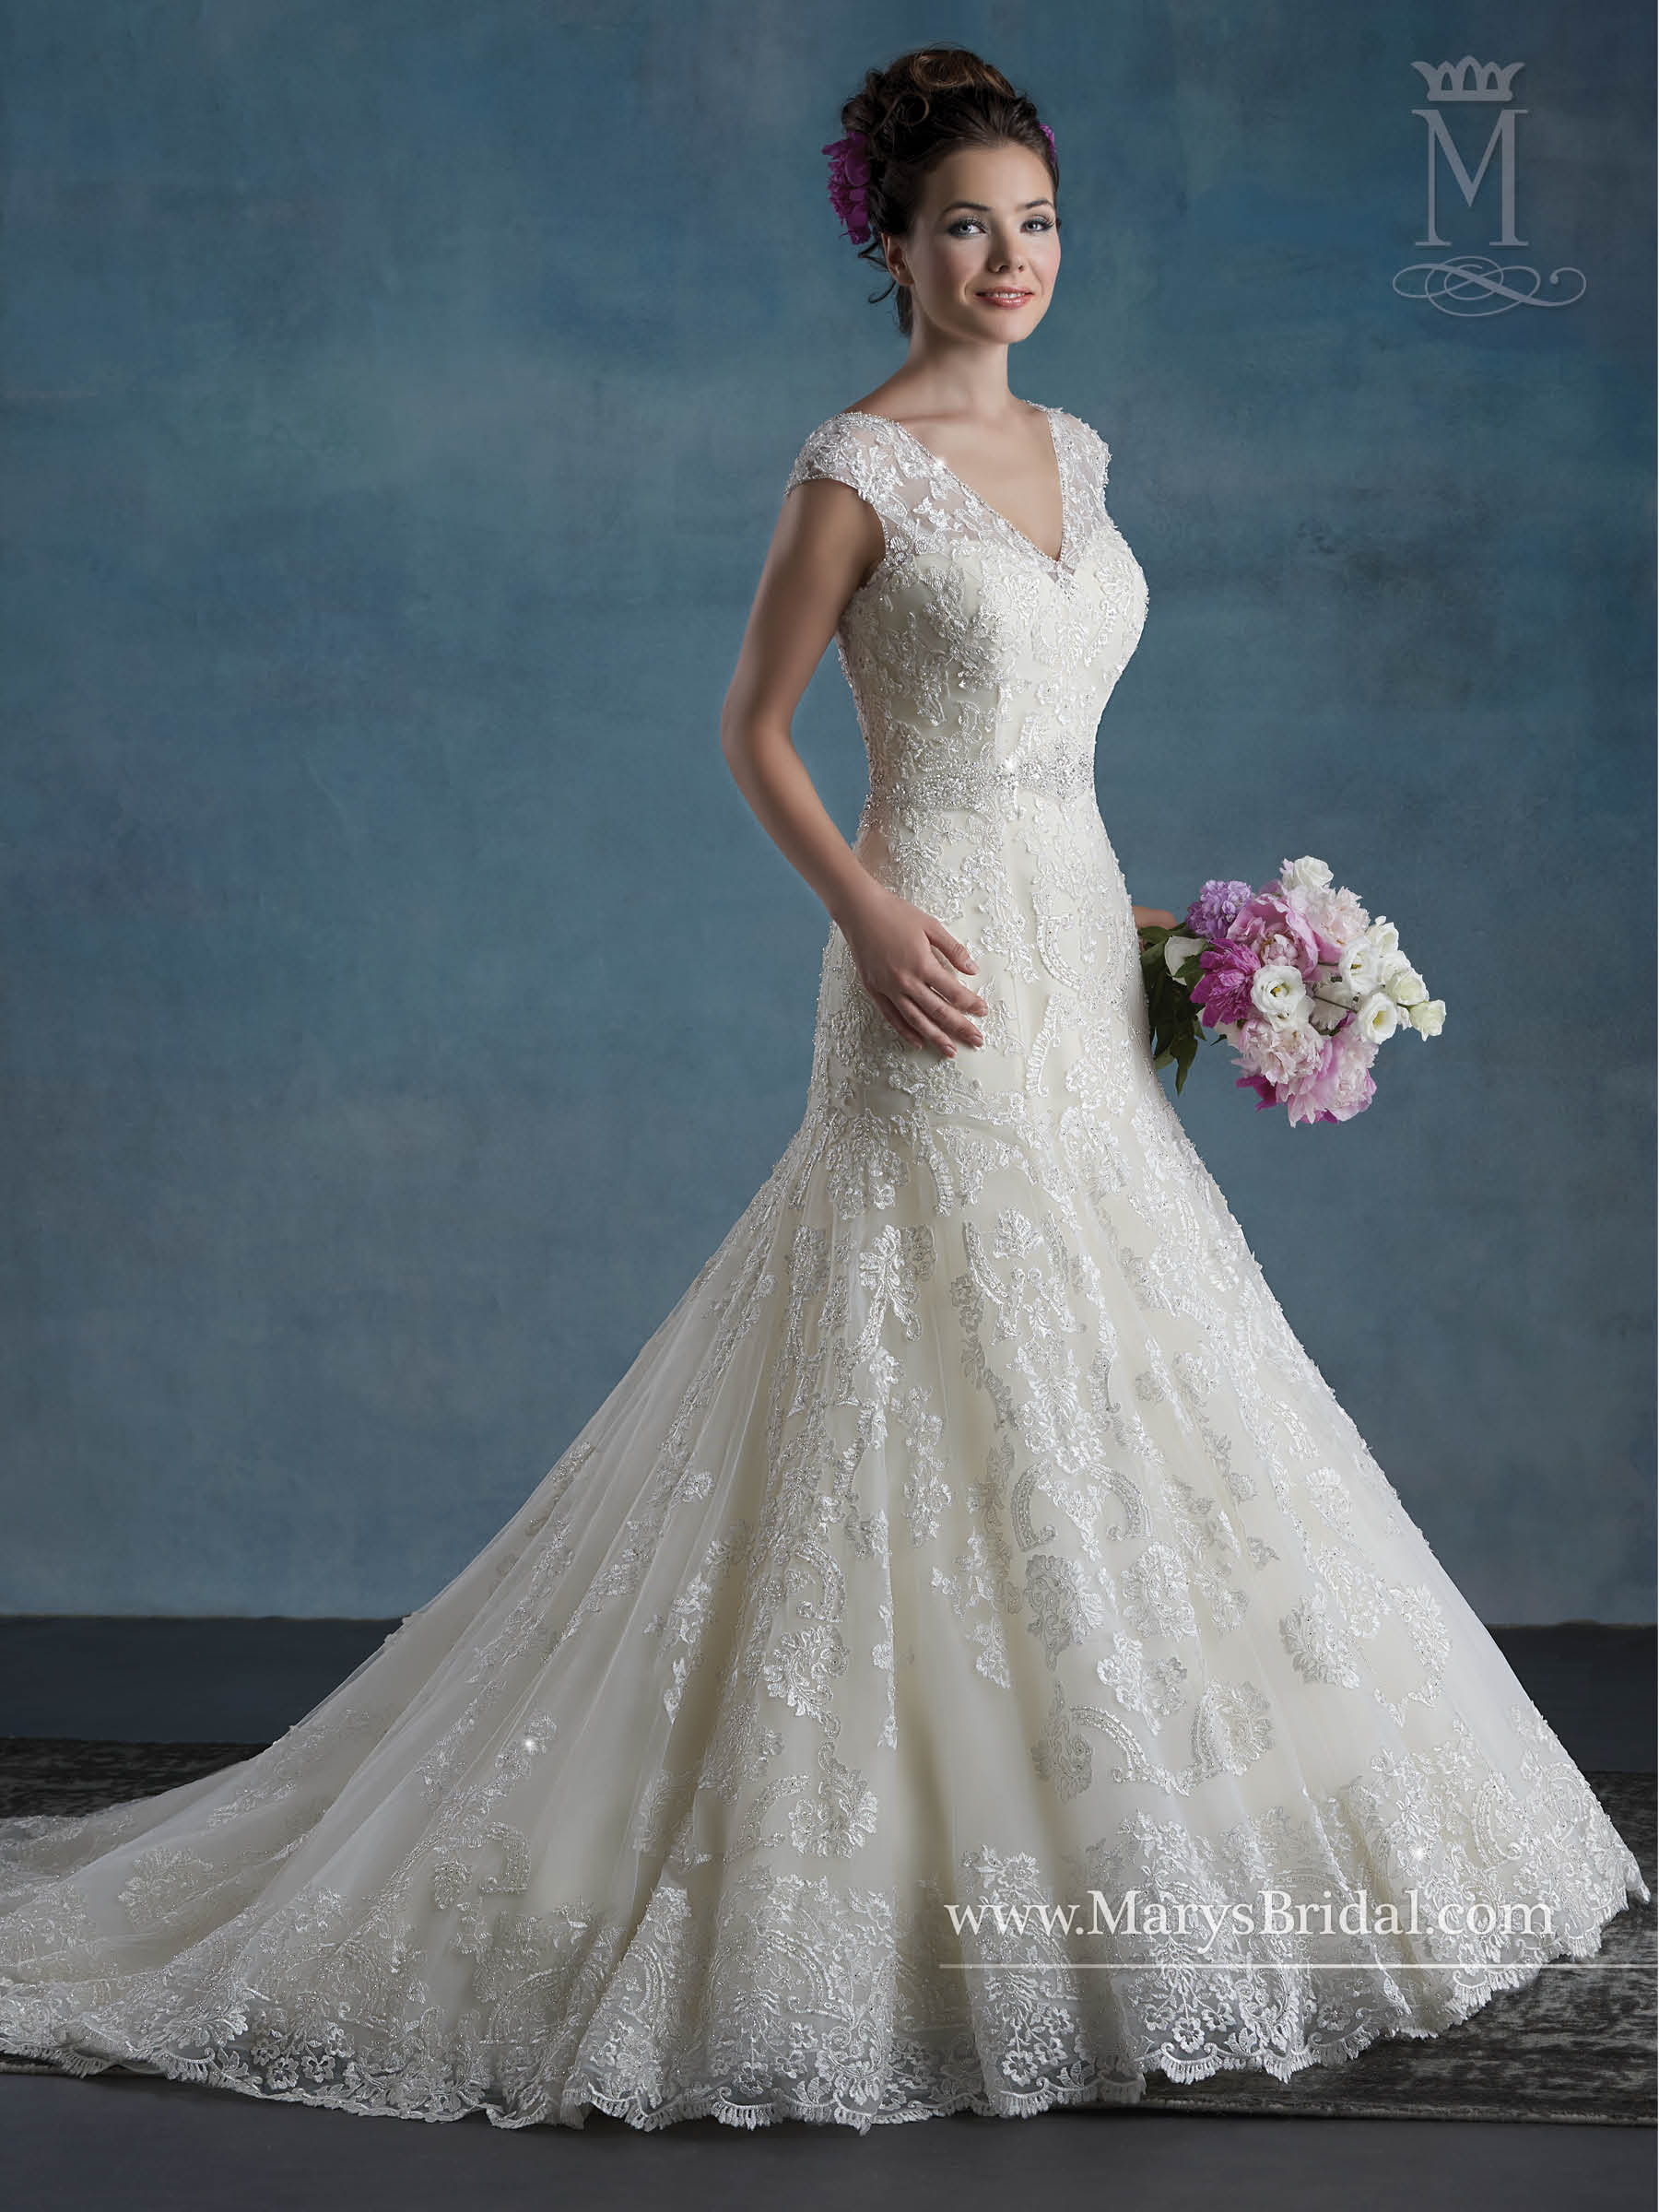 Couture Damour Bridal Dresses Style 6546 In Vanilla Or